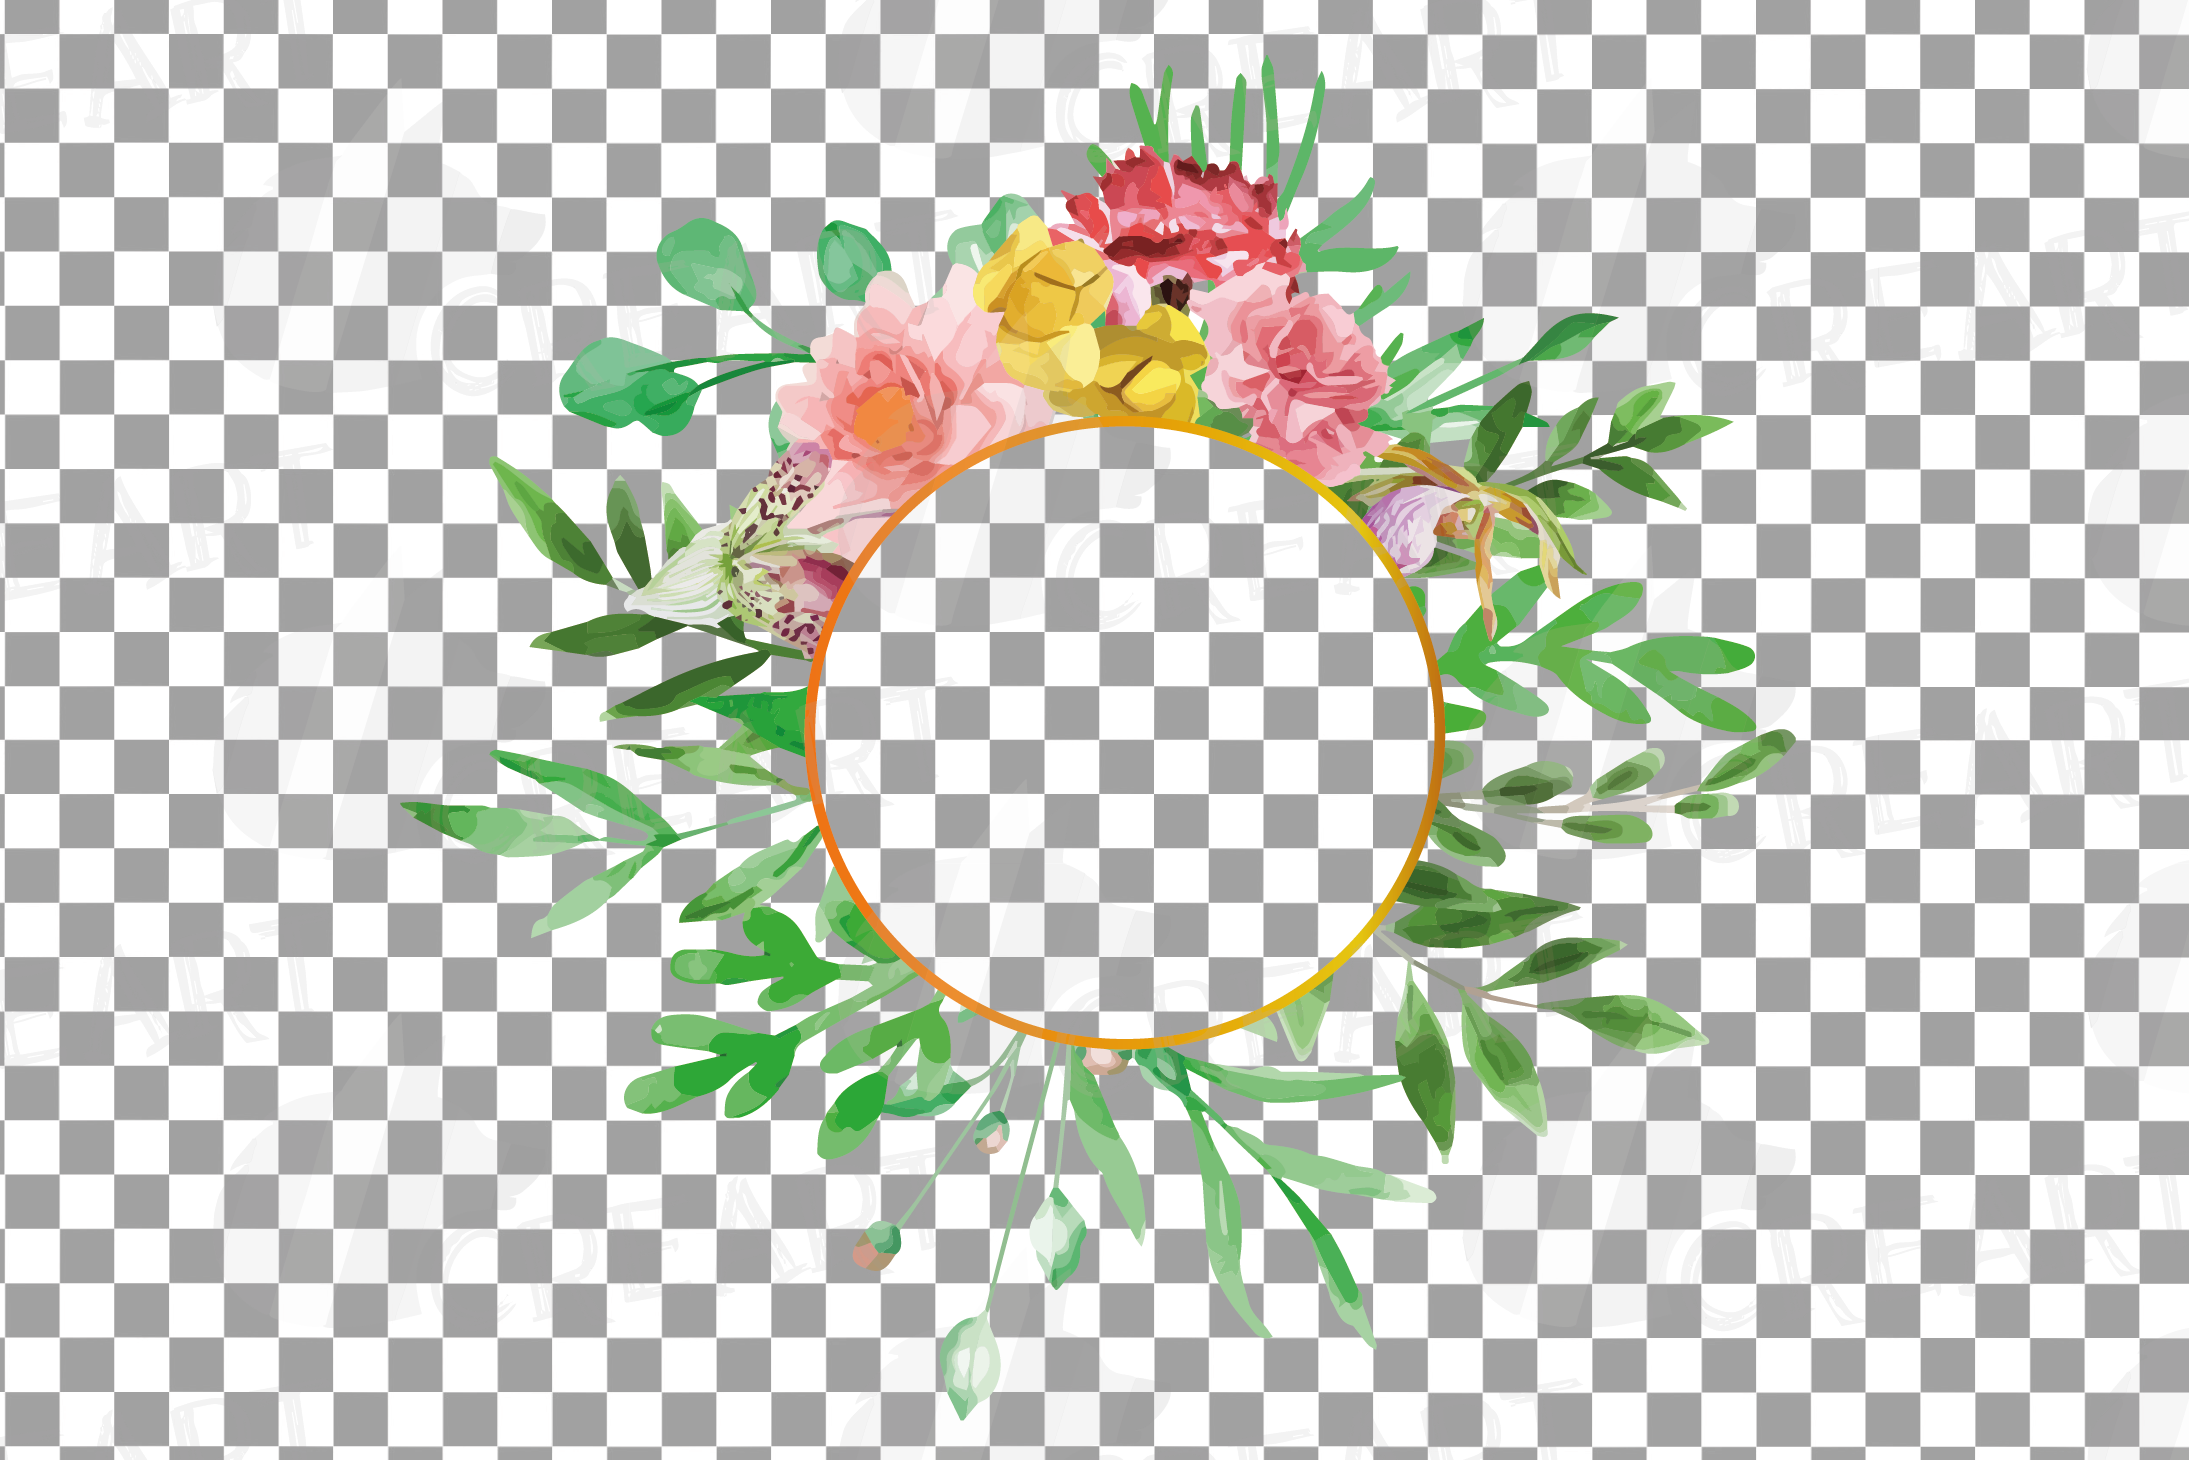 Watercolor floral floral frames and borders clip art pack example image 23